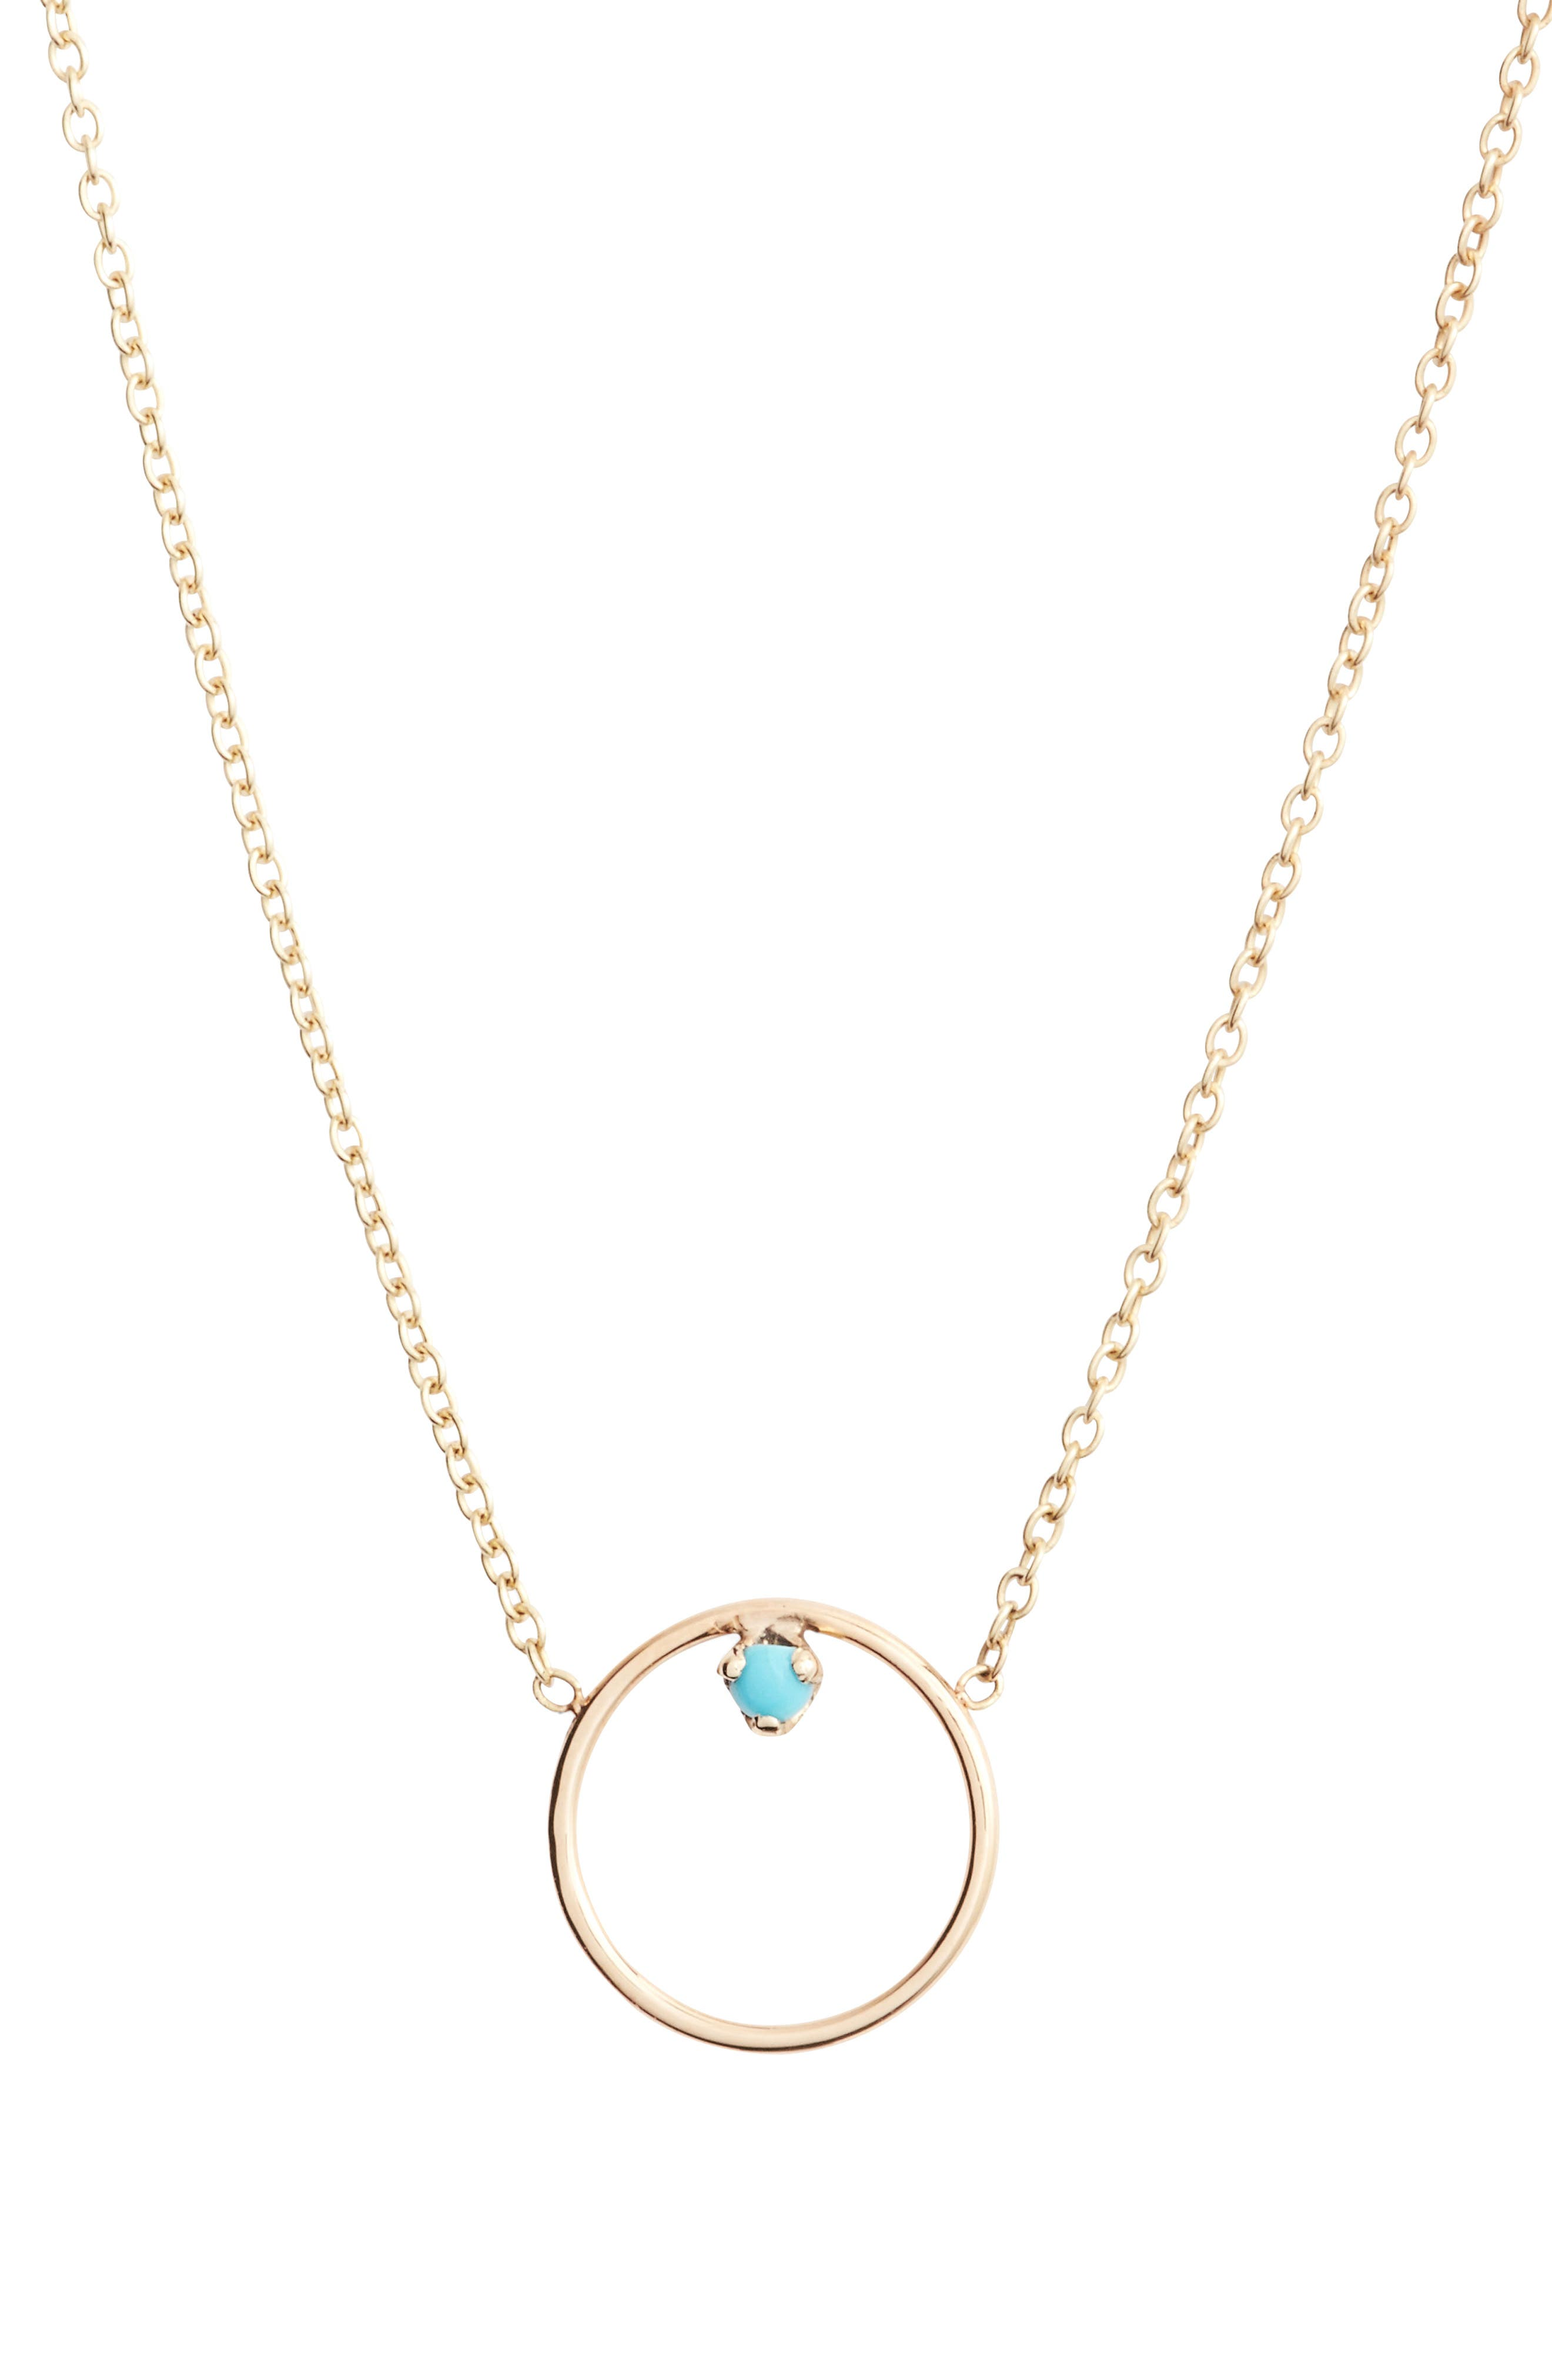 Turquoise Circle Pendant Necklace,                         Main,                         color, 710